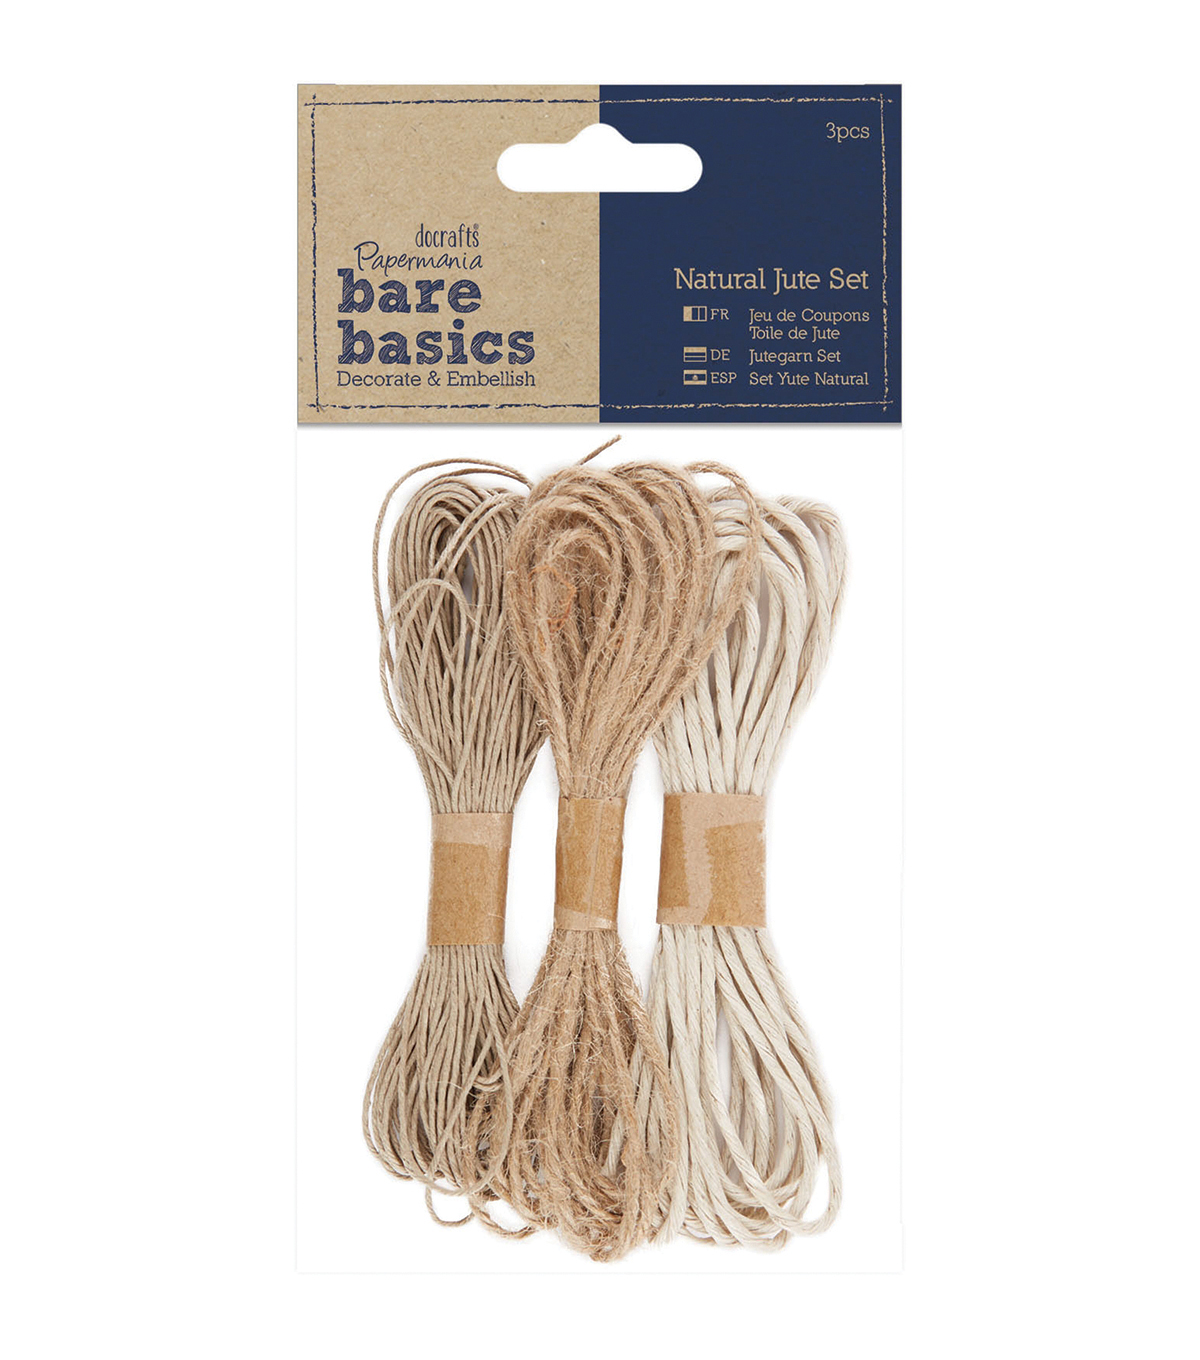 Papermania Bare Basics Natural Jute Twine